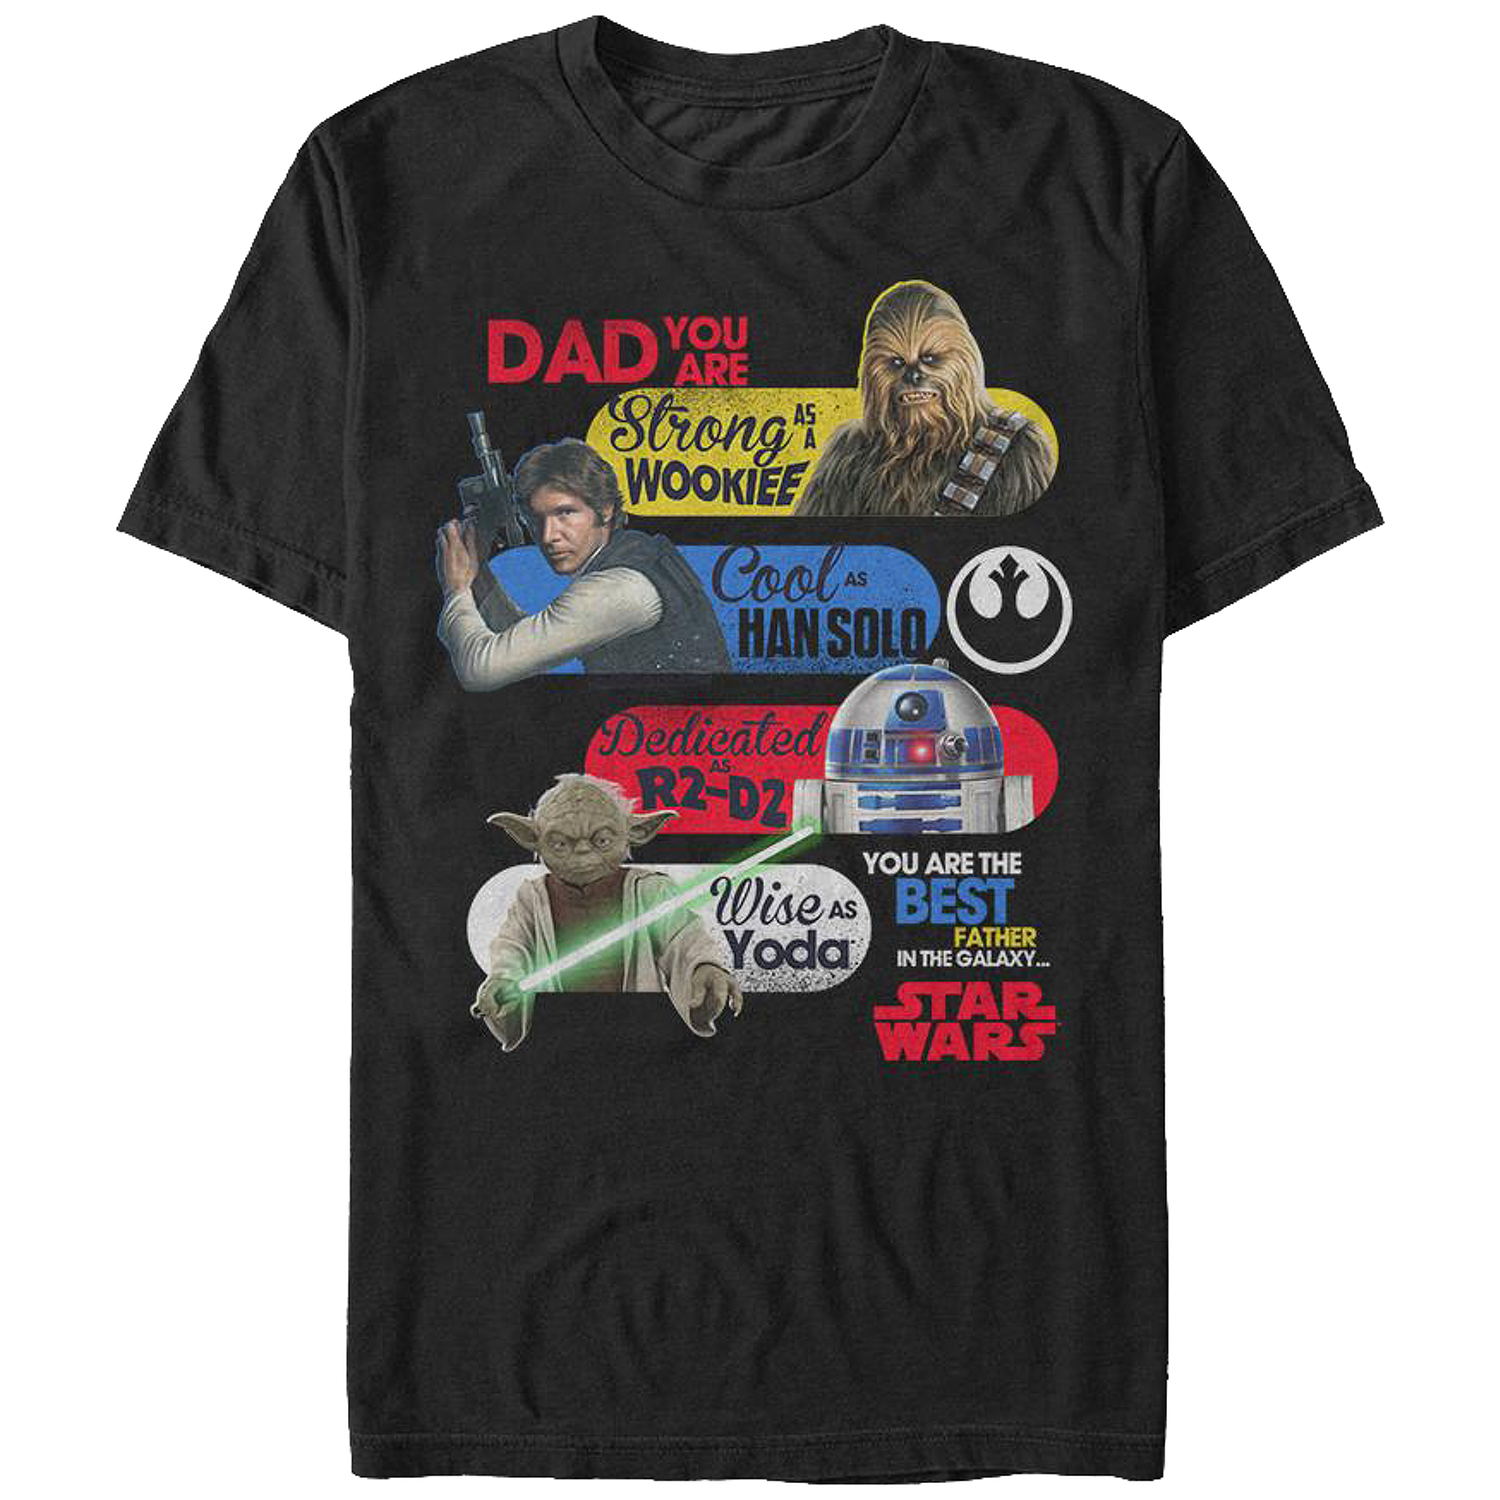 fathers-day-star-wars-shirt